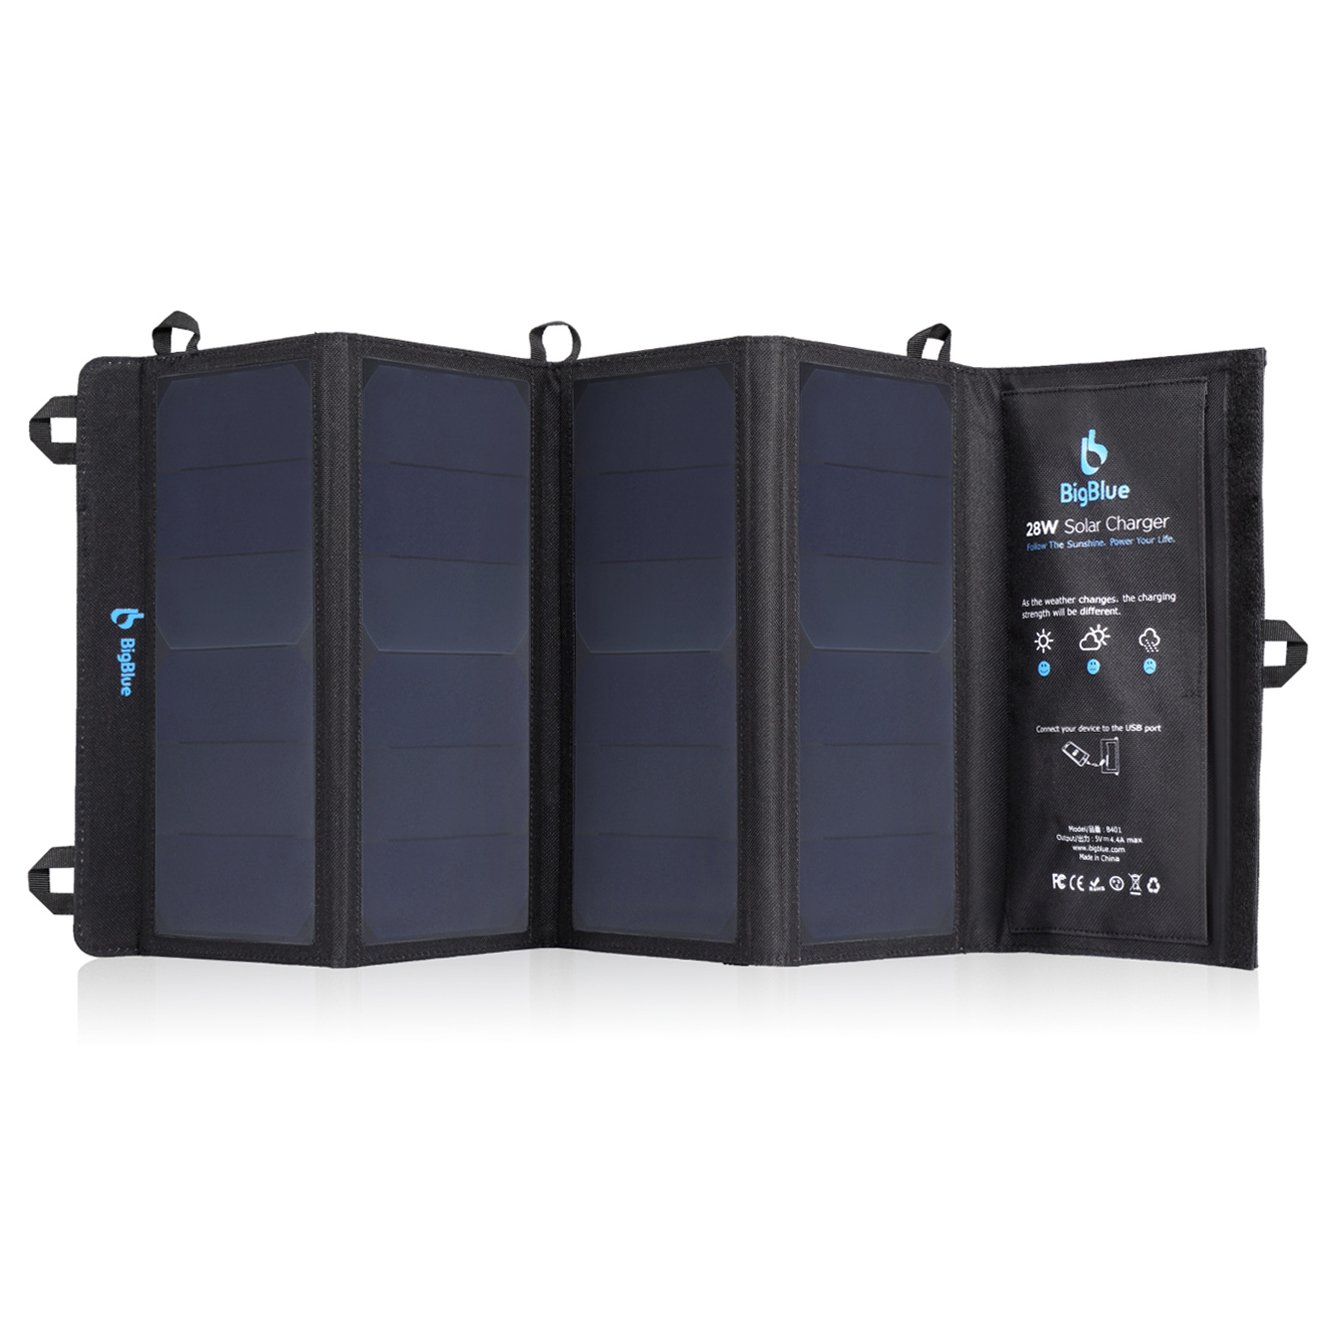 BigBlue 3 USB Ports 28W Solar Charger, 5V Foldable Waterproof Outdoor Solar Battery Charger with SunPower Solar Panel for iPhone 8/X/7/6s, iPad Pro/Air 2/Mini, Samsung Galaxy LG Cellphones and More